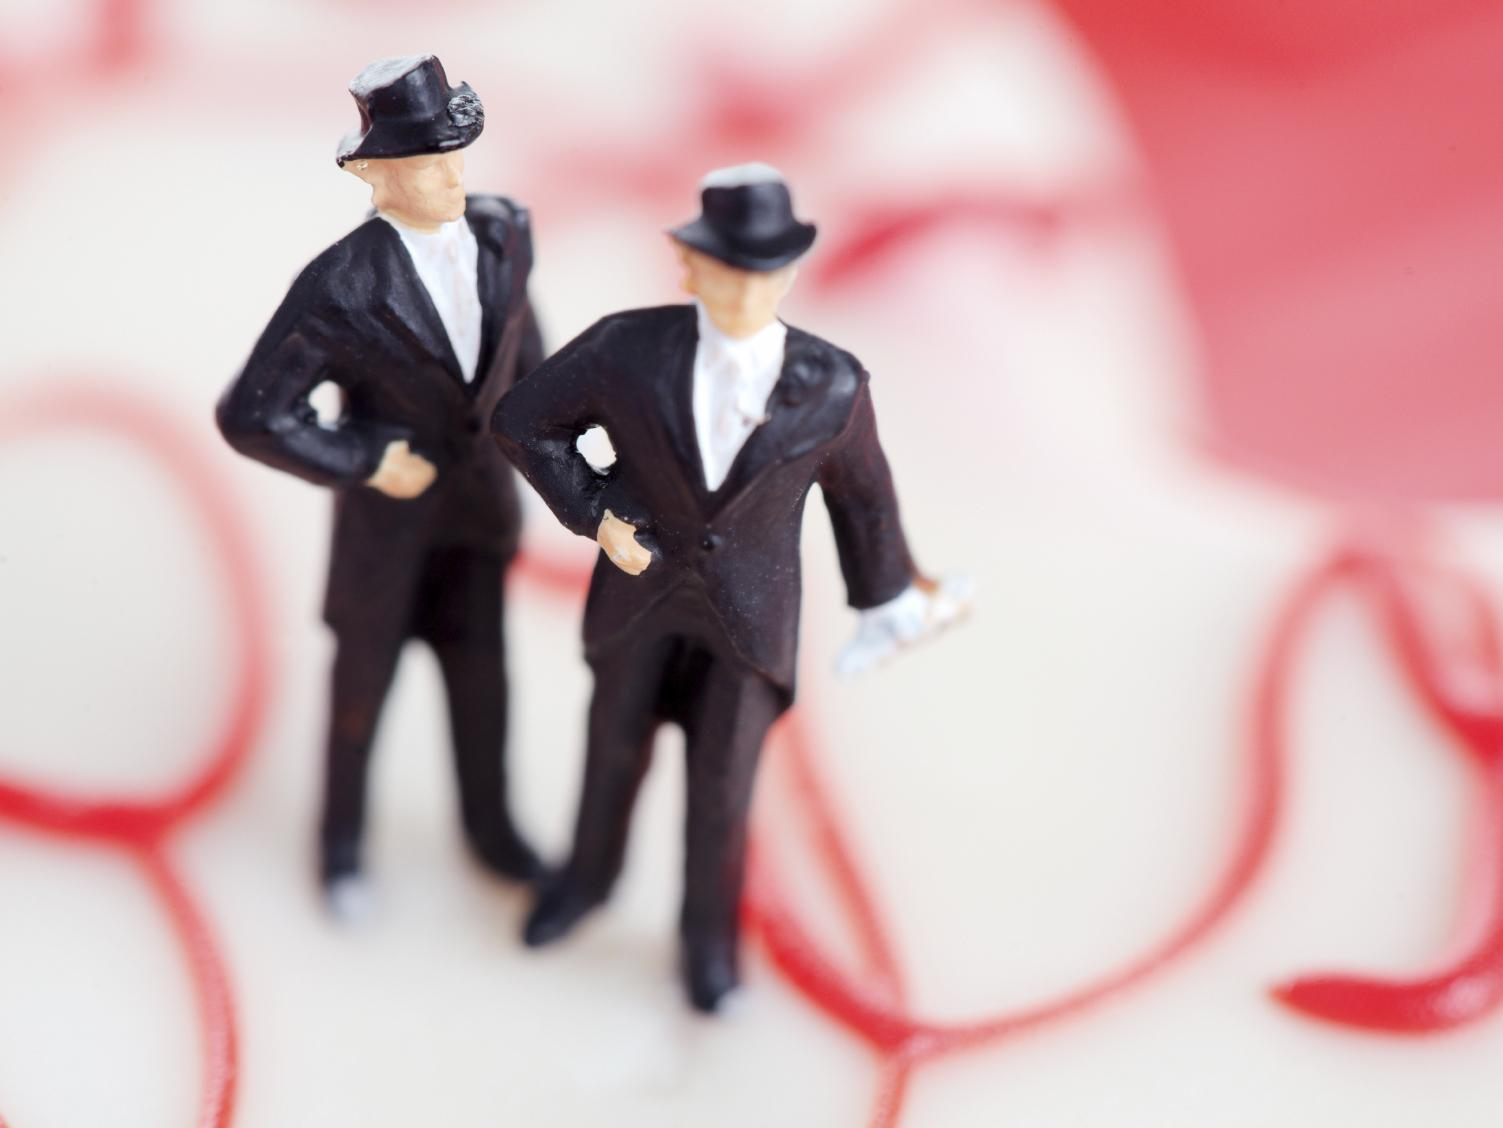 impact of policy on same sex couples Couples embrace at the conclusion of the big gay wedding  and led to the  enactment of benefits policies for married same-sex couples  supreme court  this week as proof that courts are still weighing obergefell's impact.